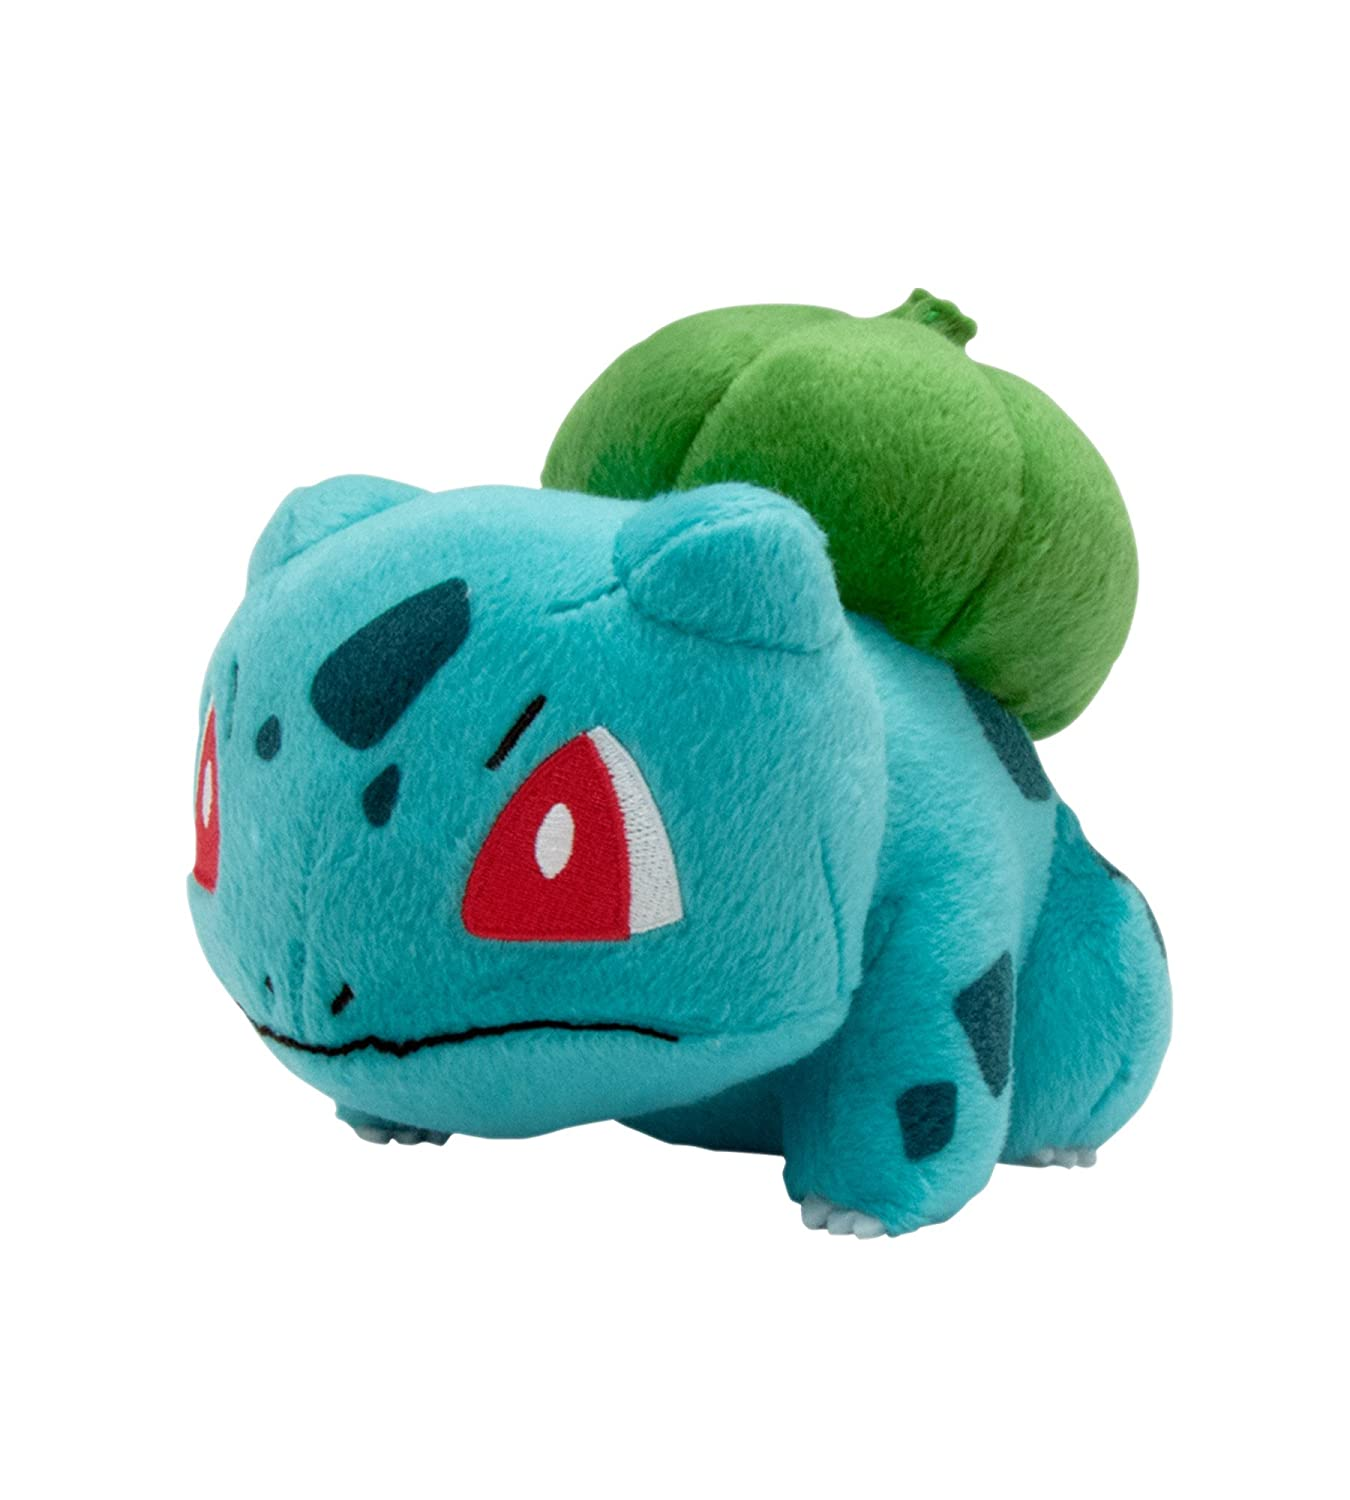 TOMY T18683 Small Plush Bulbasaur Plush